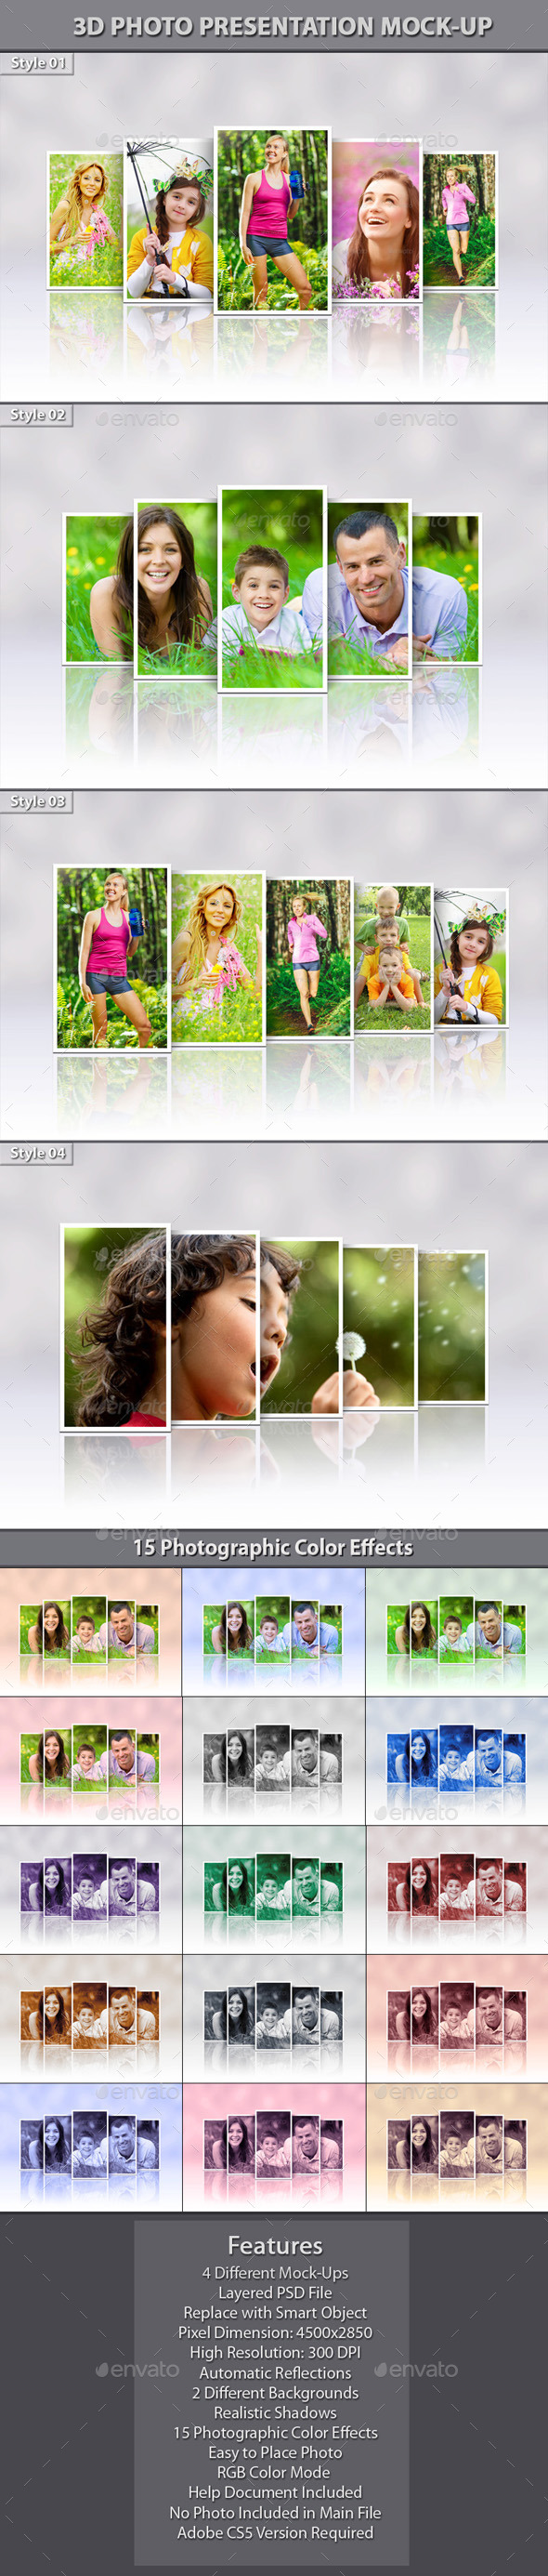 3D Photo Presentation Mock-Up - Miscellaneous Photo Templates